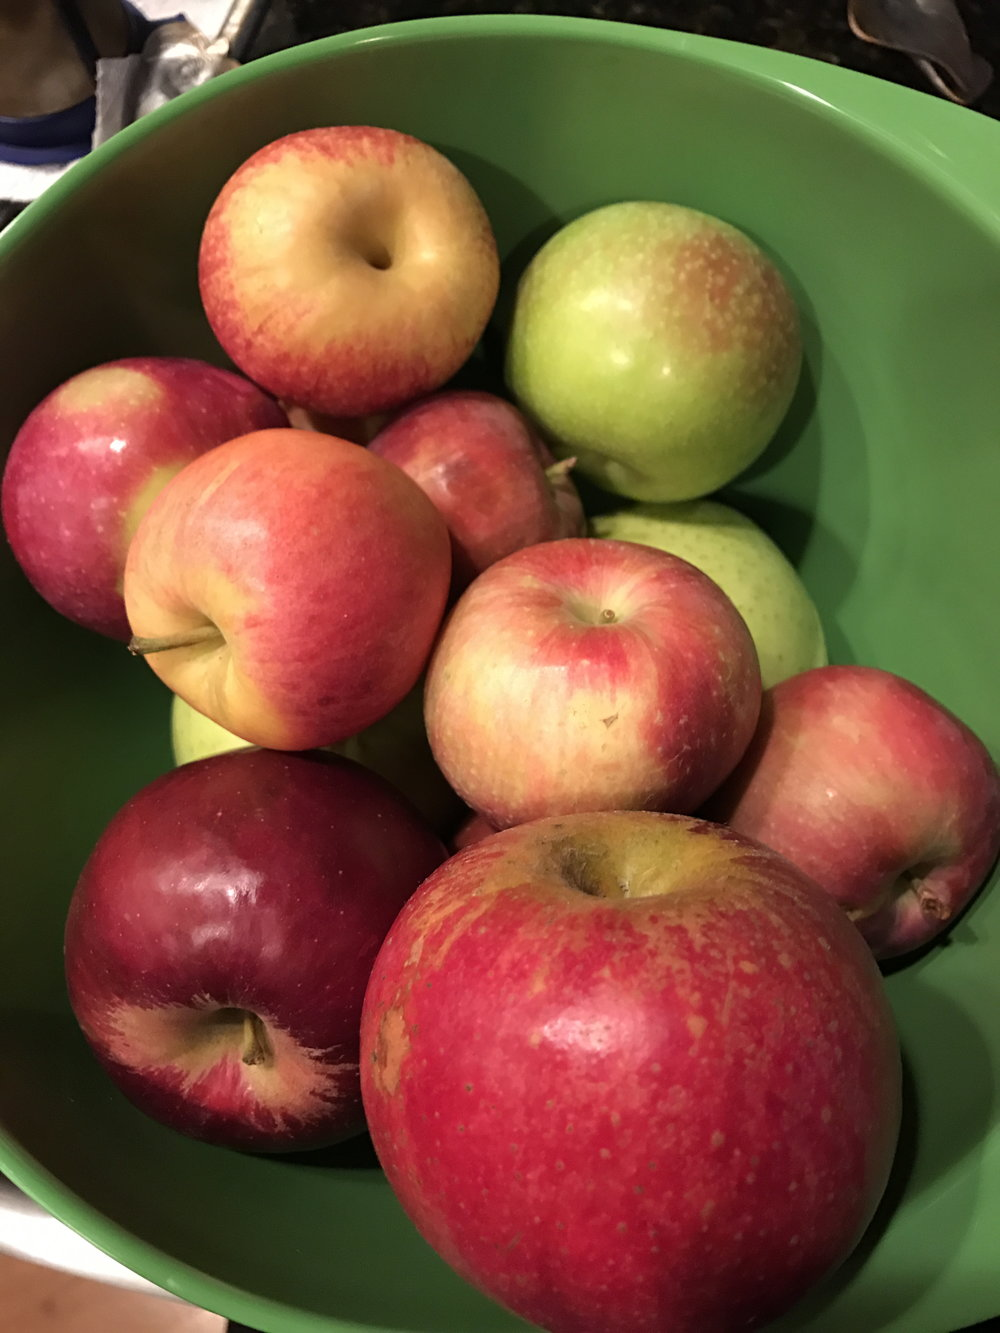 Here is our loot from the apple orchard. I have no idea which is which, so I just put a random mix of apples in the crisp.